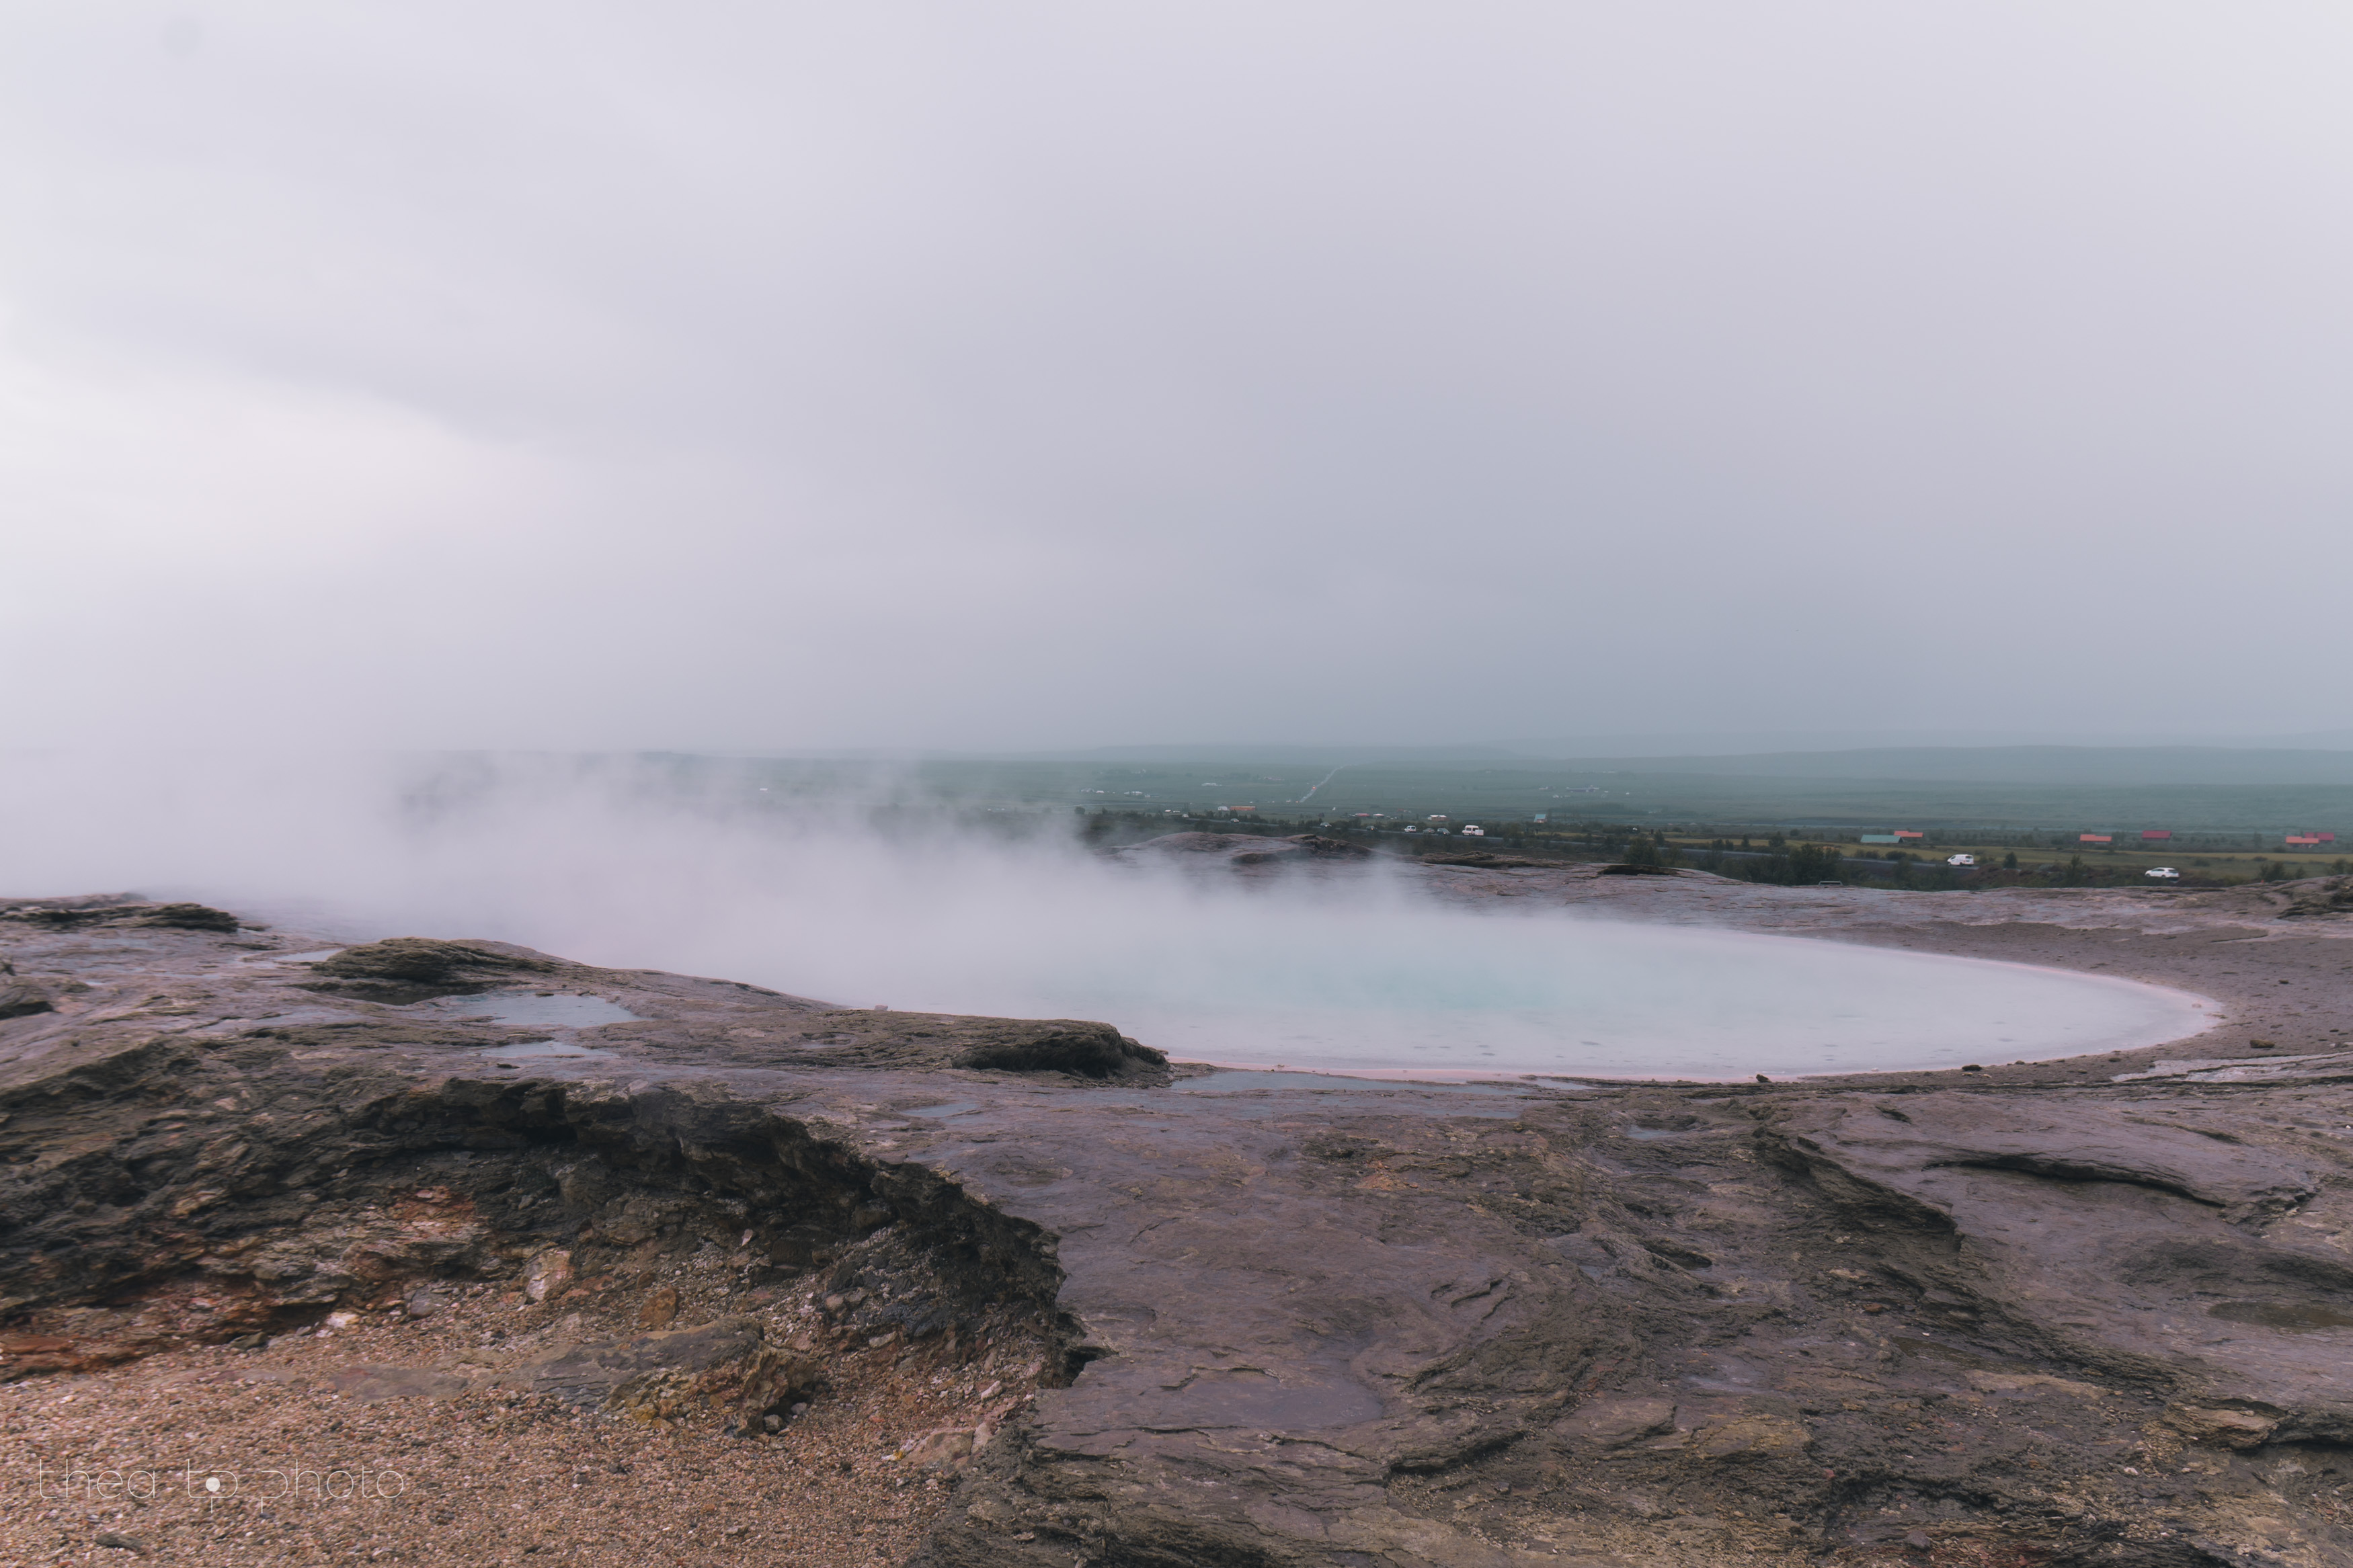 The original Geysir, where the name comes from, is now more or less inactive